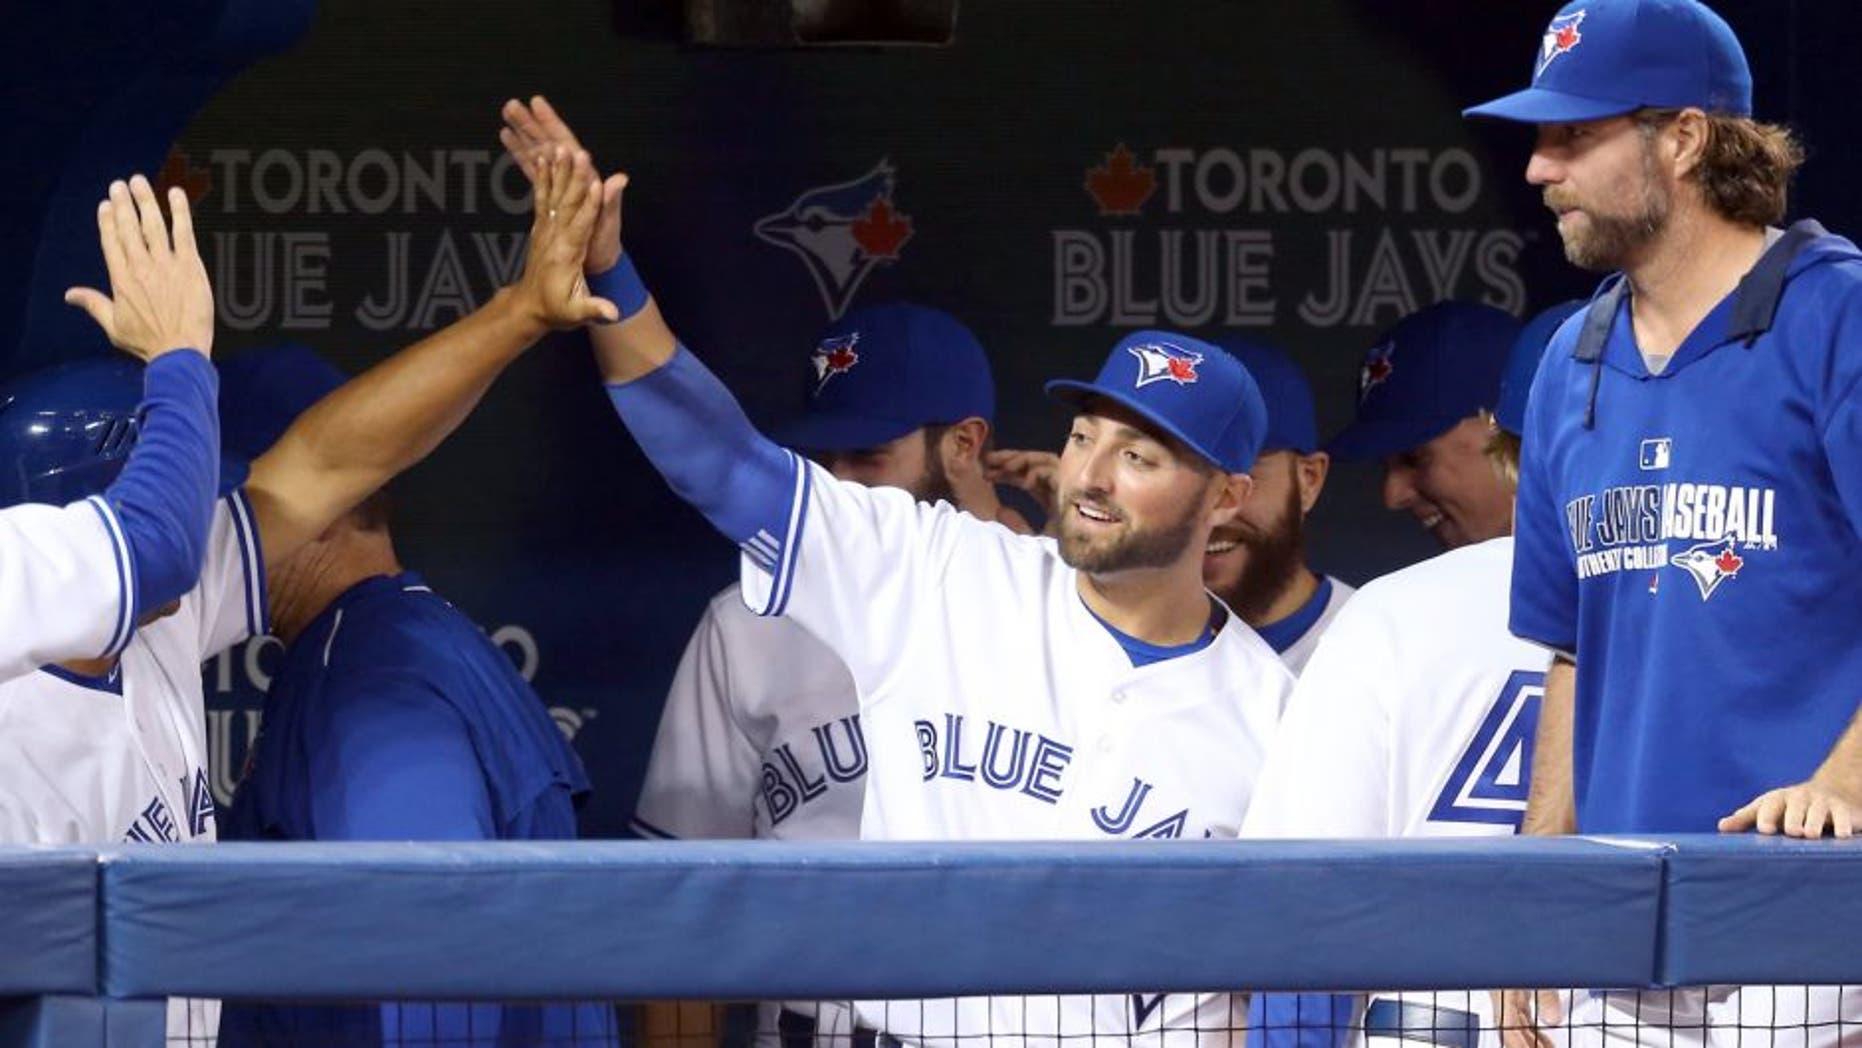 TORONTO, CANADA - APRIL 15: Kevin Pillar #11 of the Toronto Blue Jays is congratulated by teammates after making a leaping catch in the seventh inning during an MLB game against the Tampa Bay Rays on April 15, 2015 at Rogers Centre in Toronto, Ontario, Canada. All uniformed team members are wearing jersey number 42 in honor of Jackie Robinson Day. (Photo by Tom Szczerbowski/Getty Images)